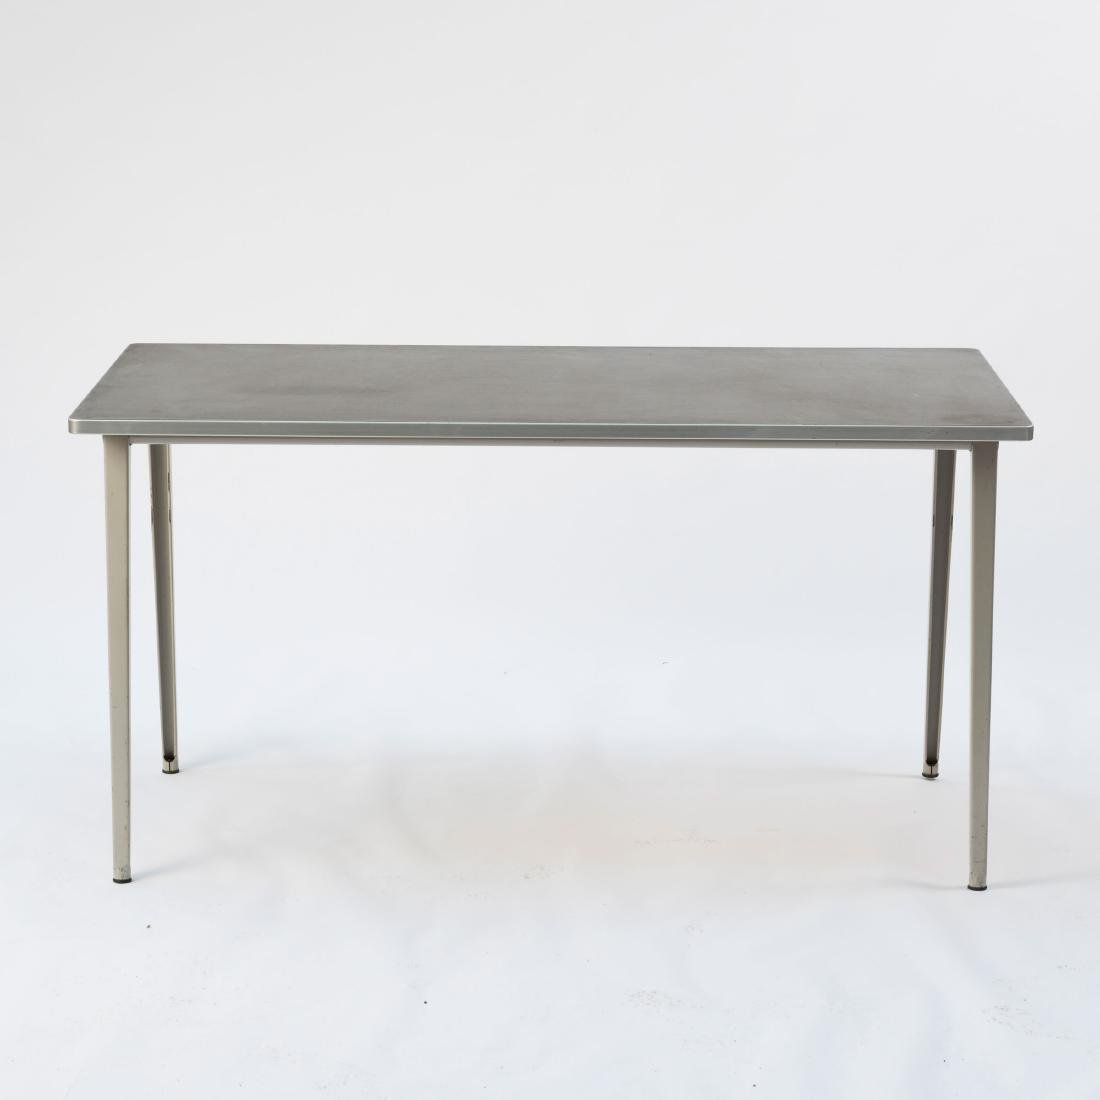 'Revolt' table, 1954 - 2